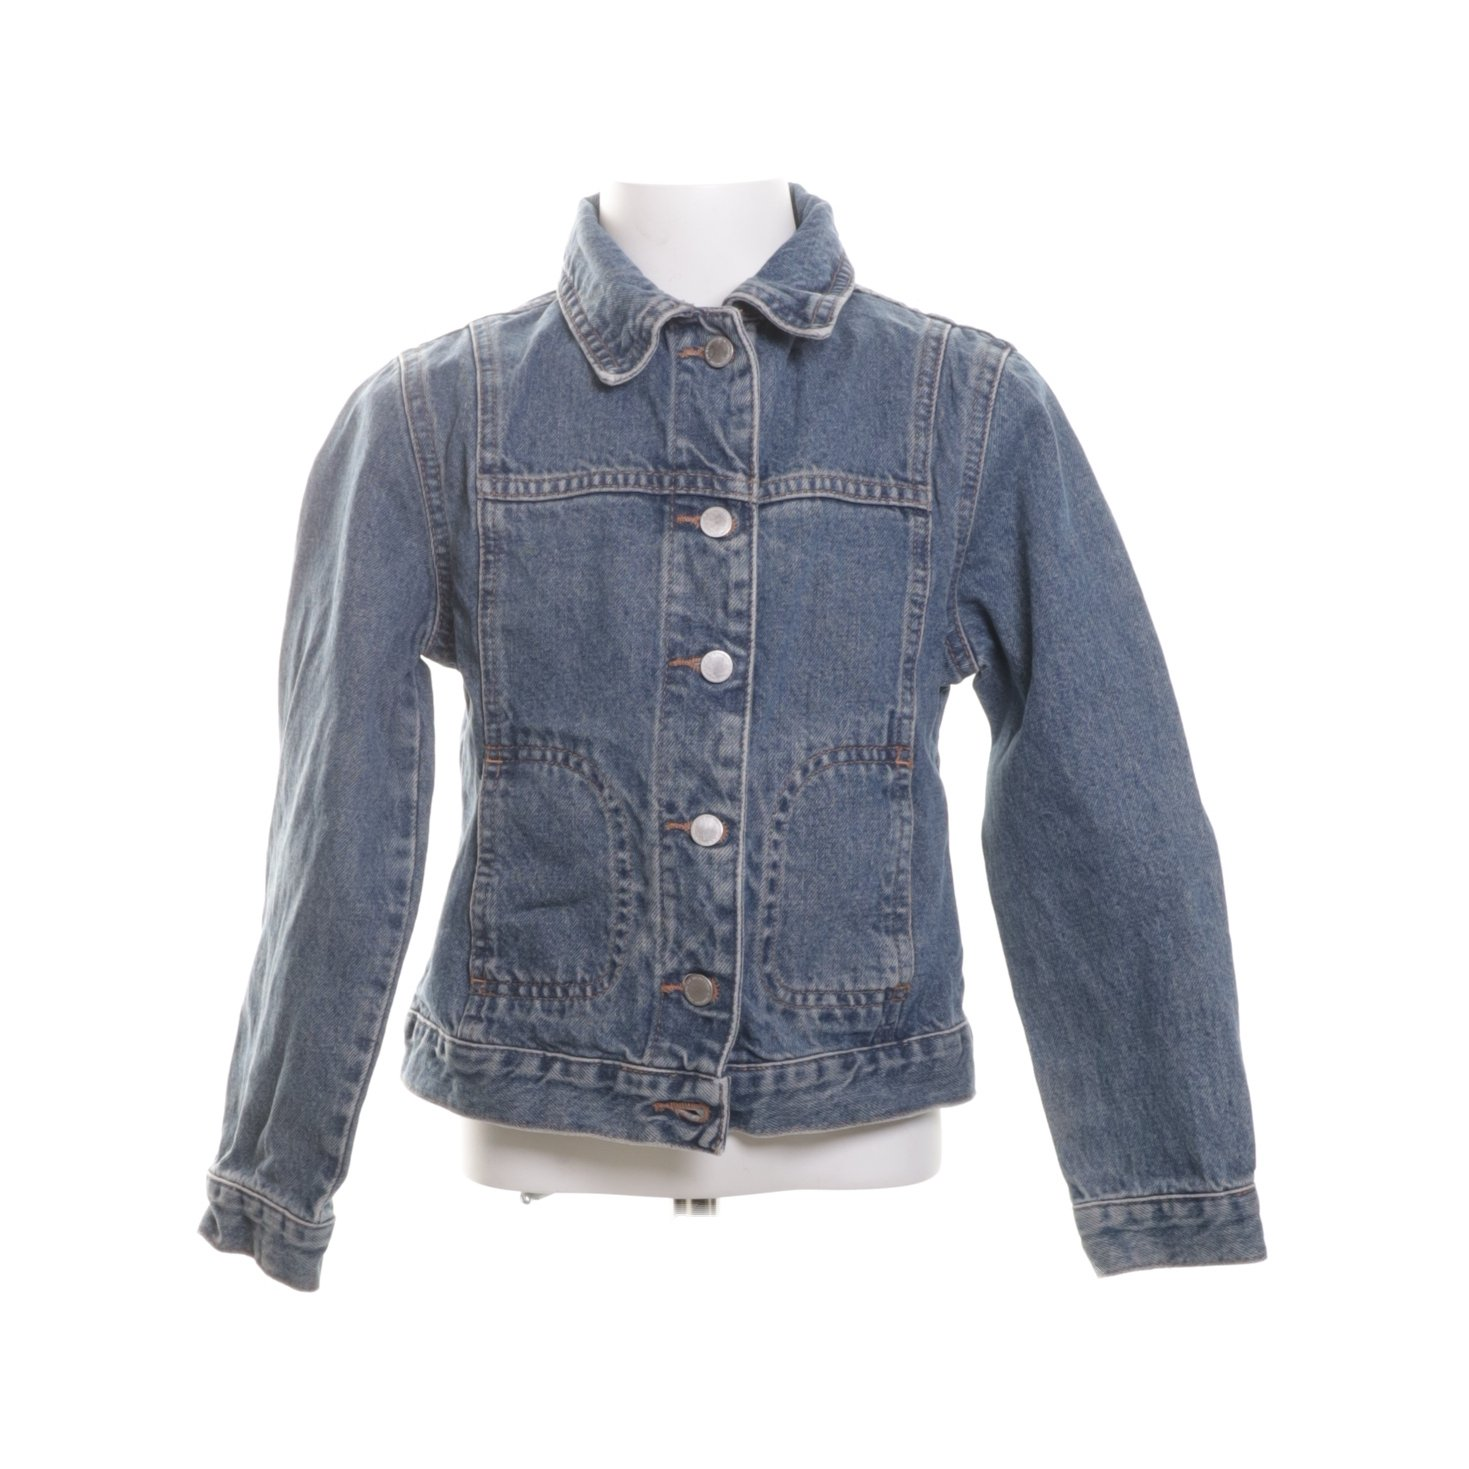 United Colors of Benetton, Jeansjacka, St.. (422424873) ᐈ